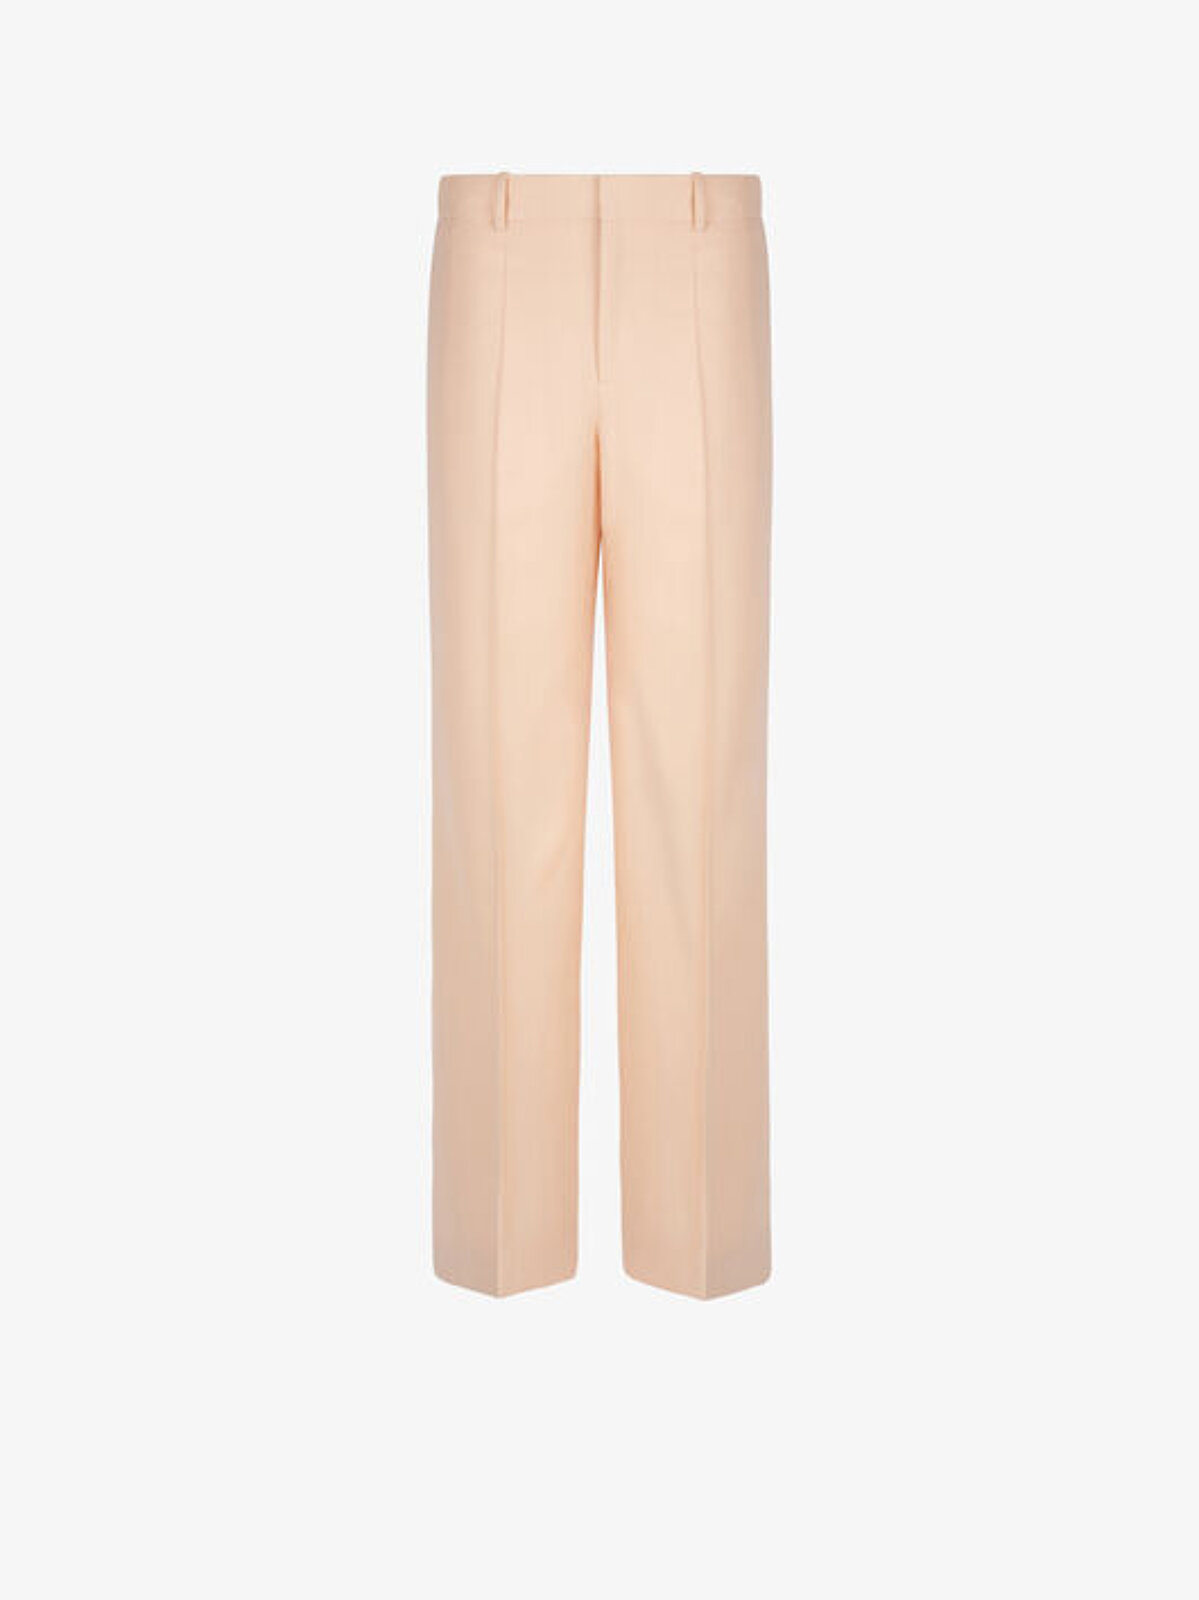 Pantaloni Maschili In Lana - Givenchy